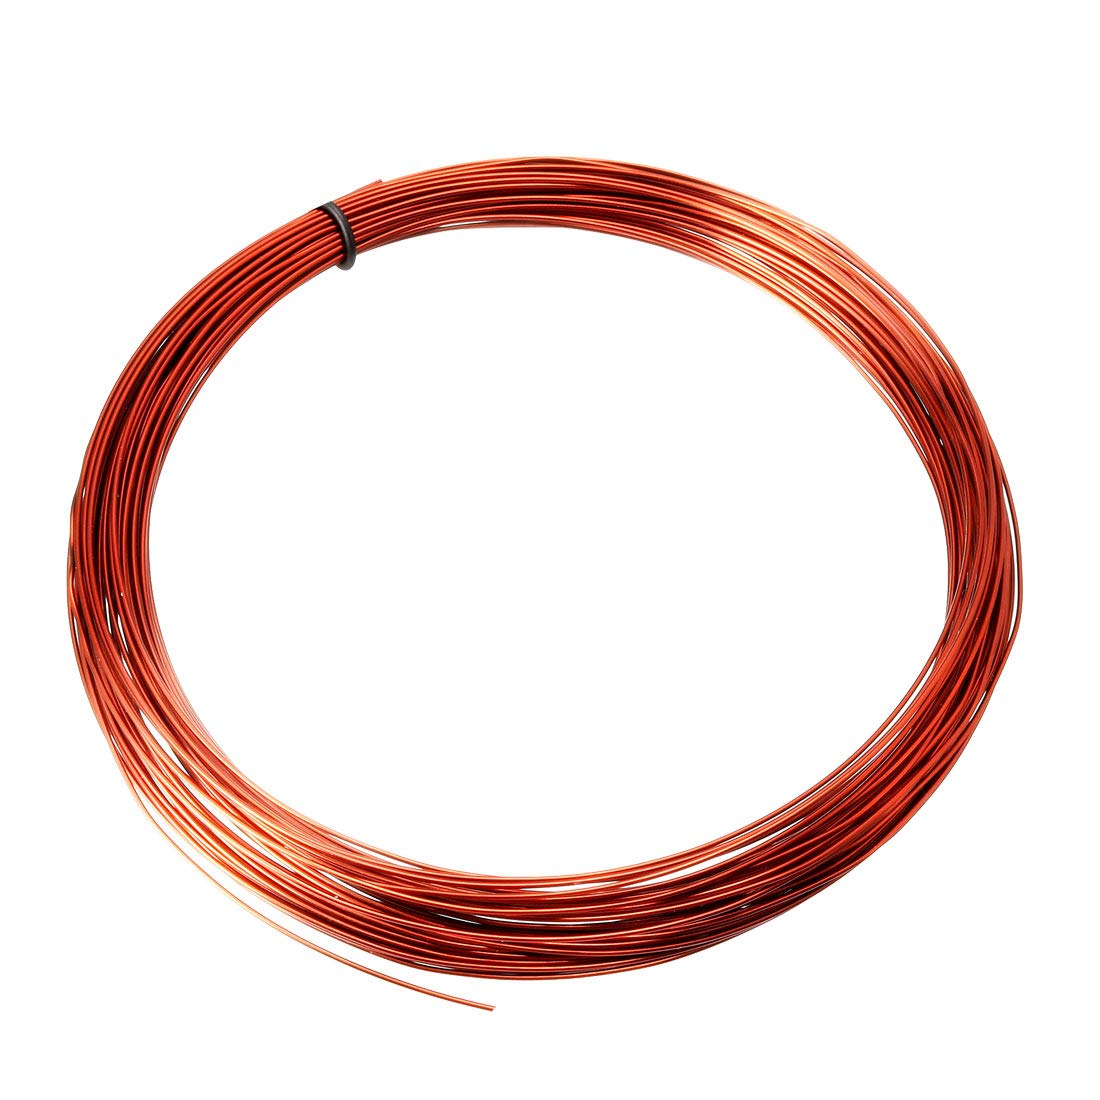 sourcing map 0.67mm Dia Magnet Wire Enameled Copper Wire Winding Coil 49.2' Length Widely Used for Transformers Inductors